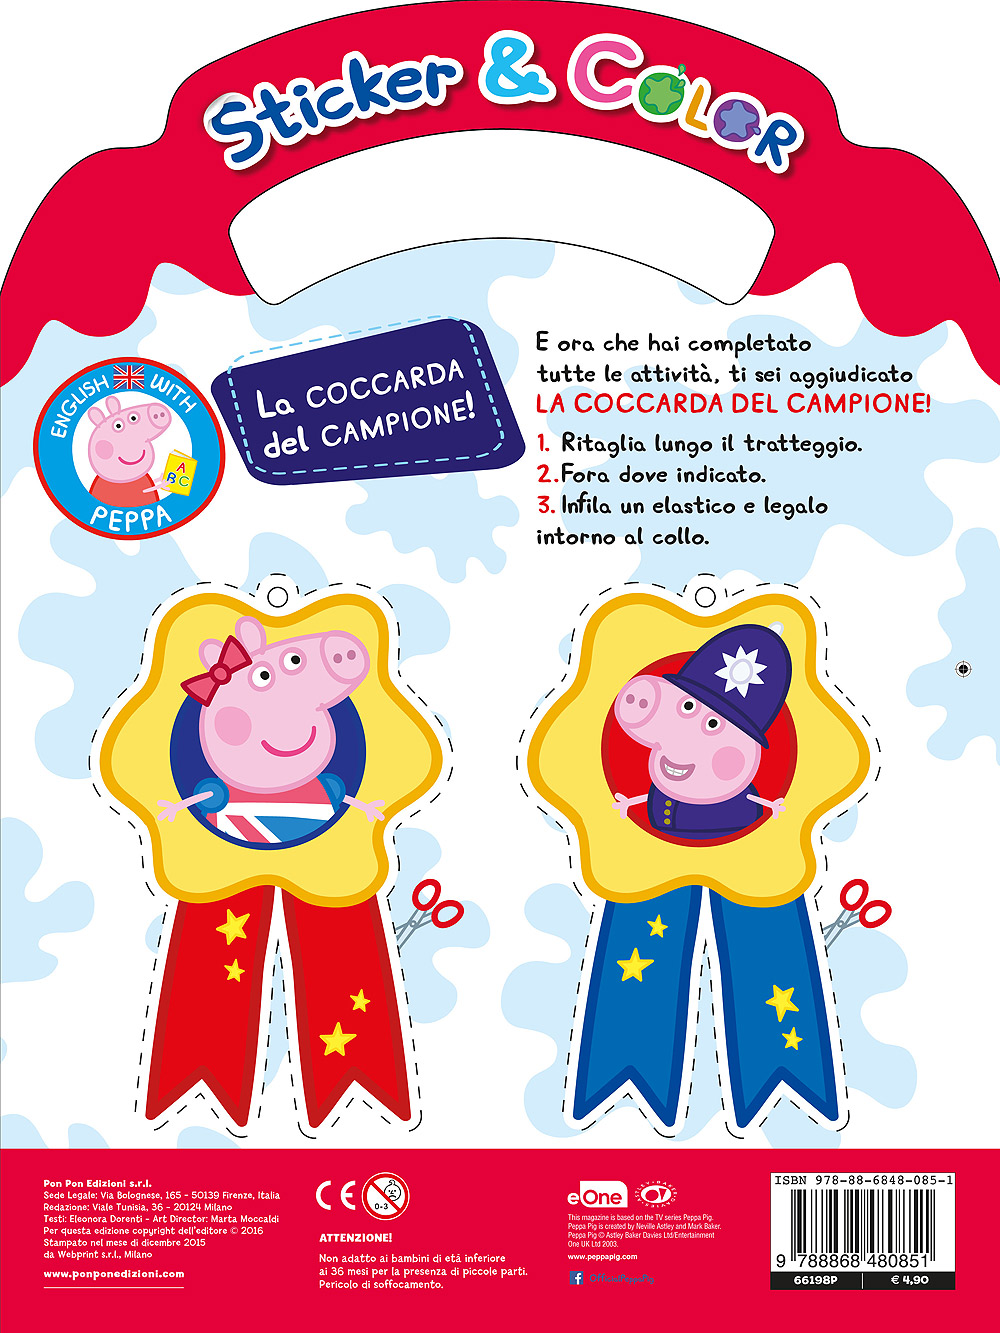 Sticker & Color Impara l'inglese con Peppa Pig - I numeri I colori